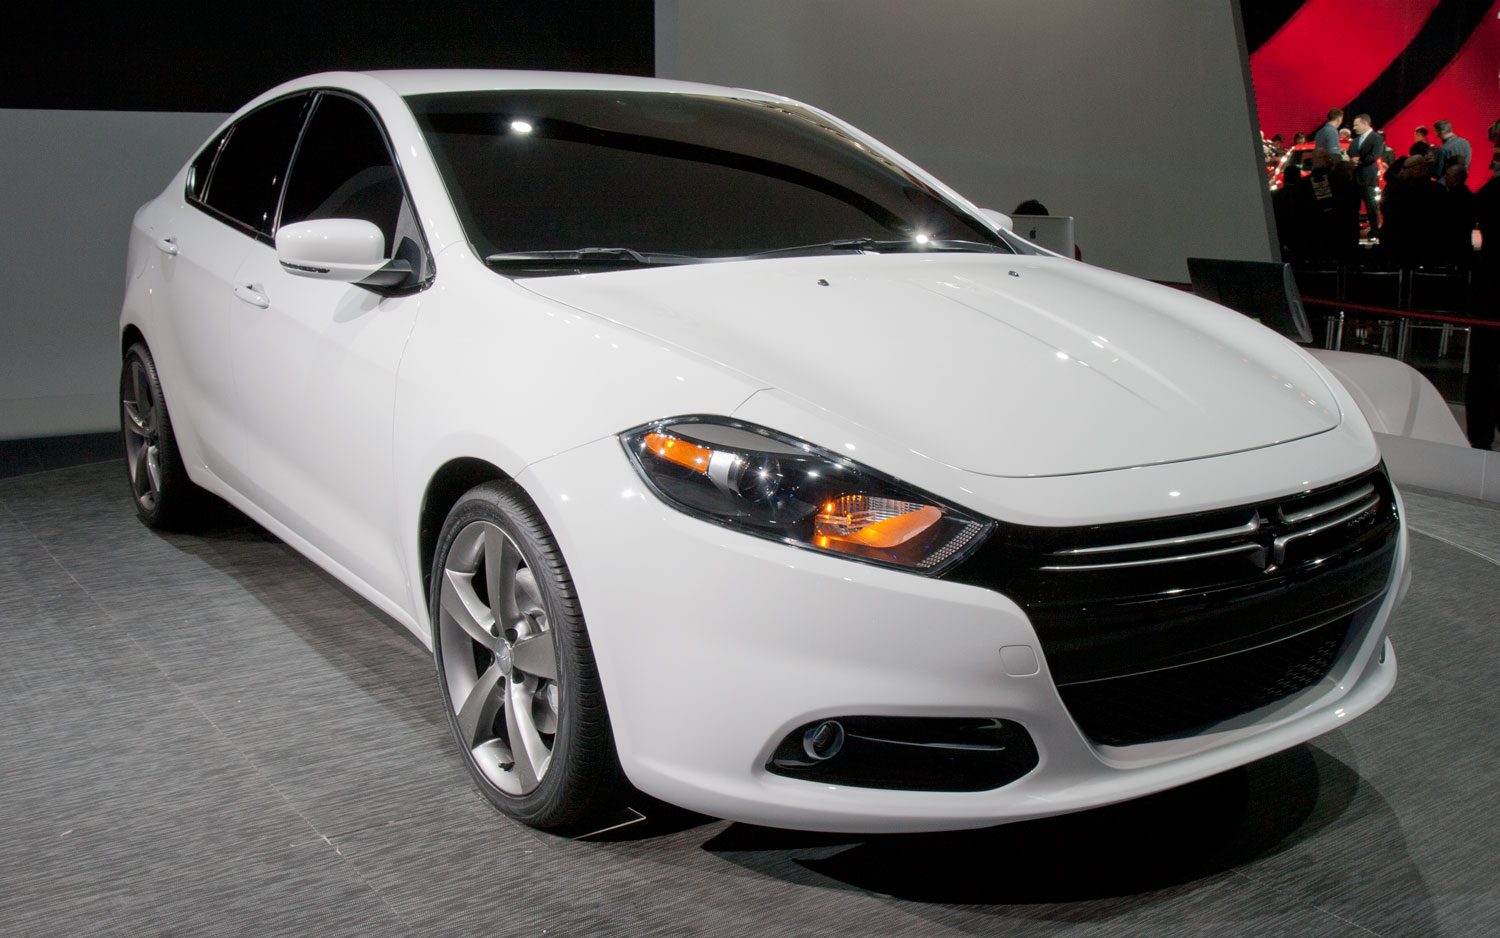 detroit 2012 the 2013 dodge dart by the numbers. Black Bedroom Furniture Sets. Home Design Ideas